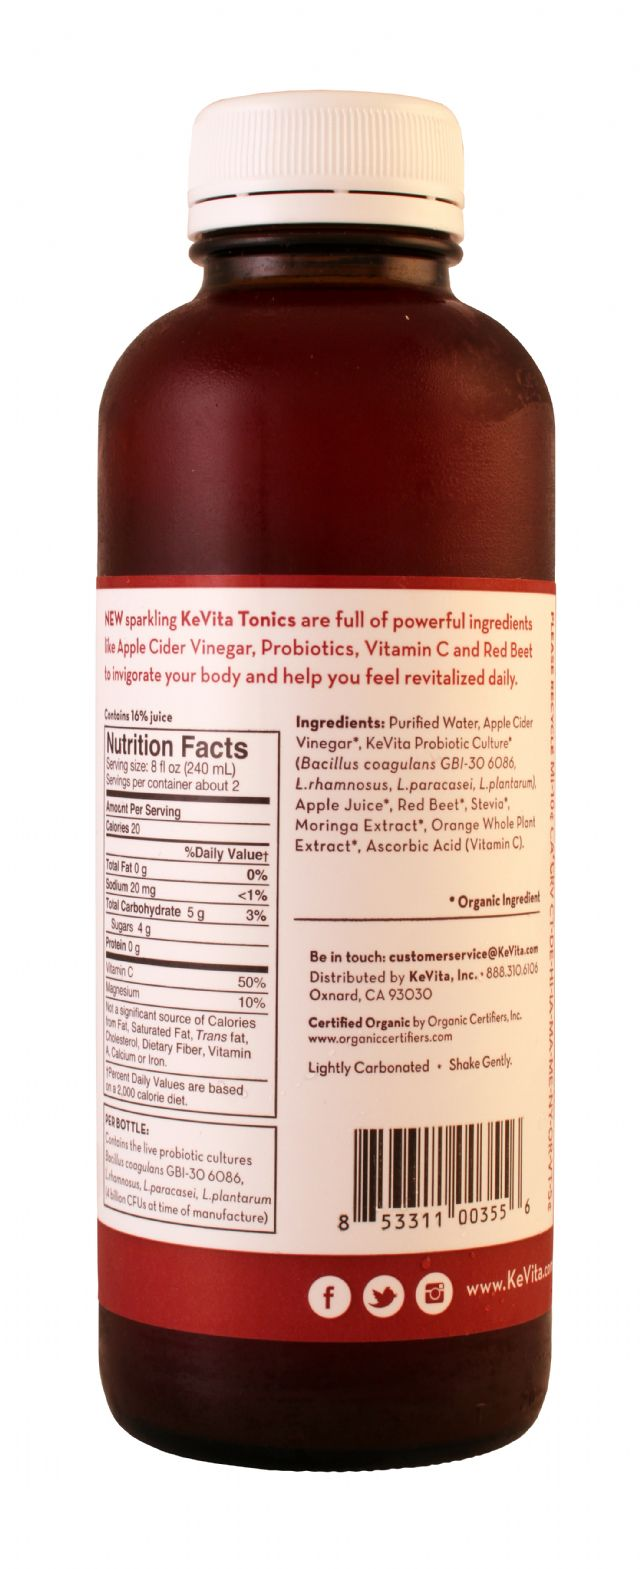 KeVita Tonics: KevitaTonics RedBeet Facts